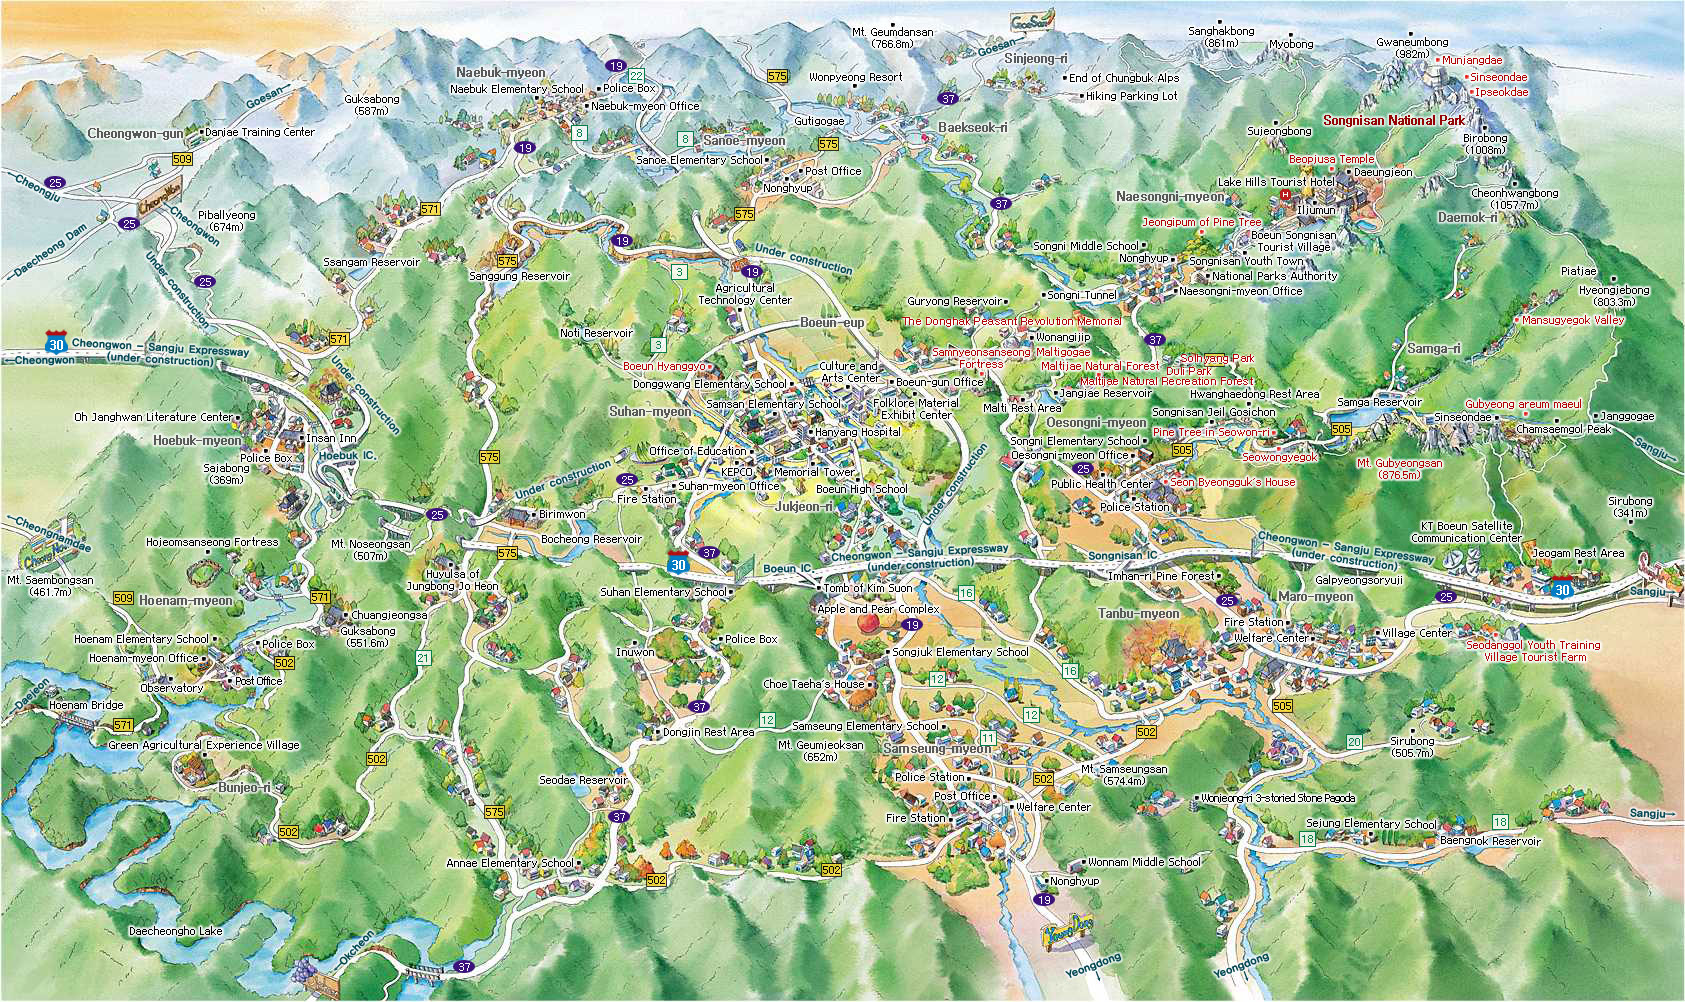 boeun travel map. The map has been developed in English